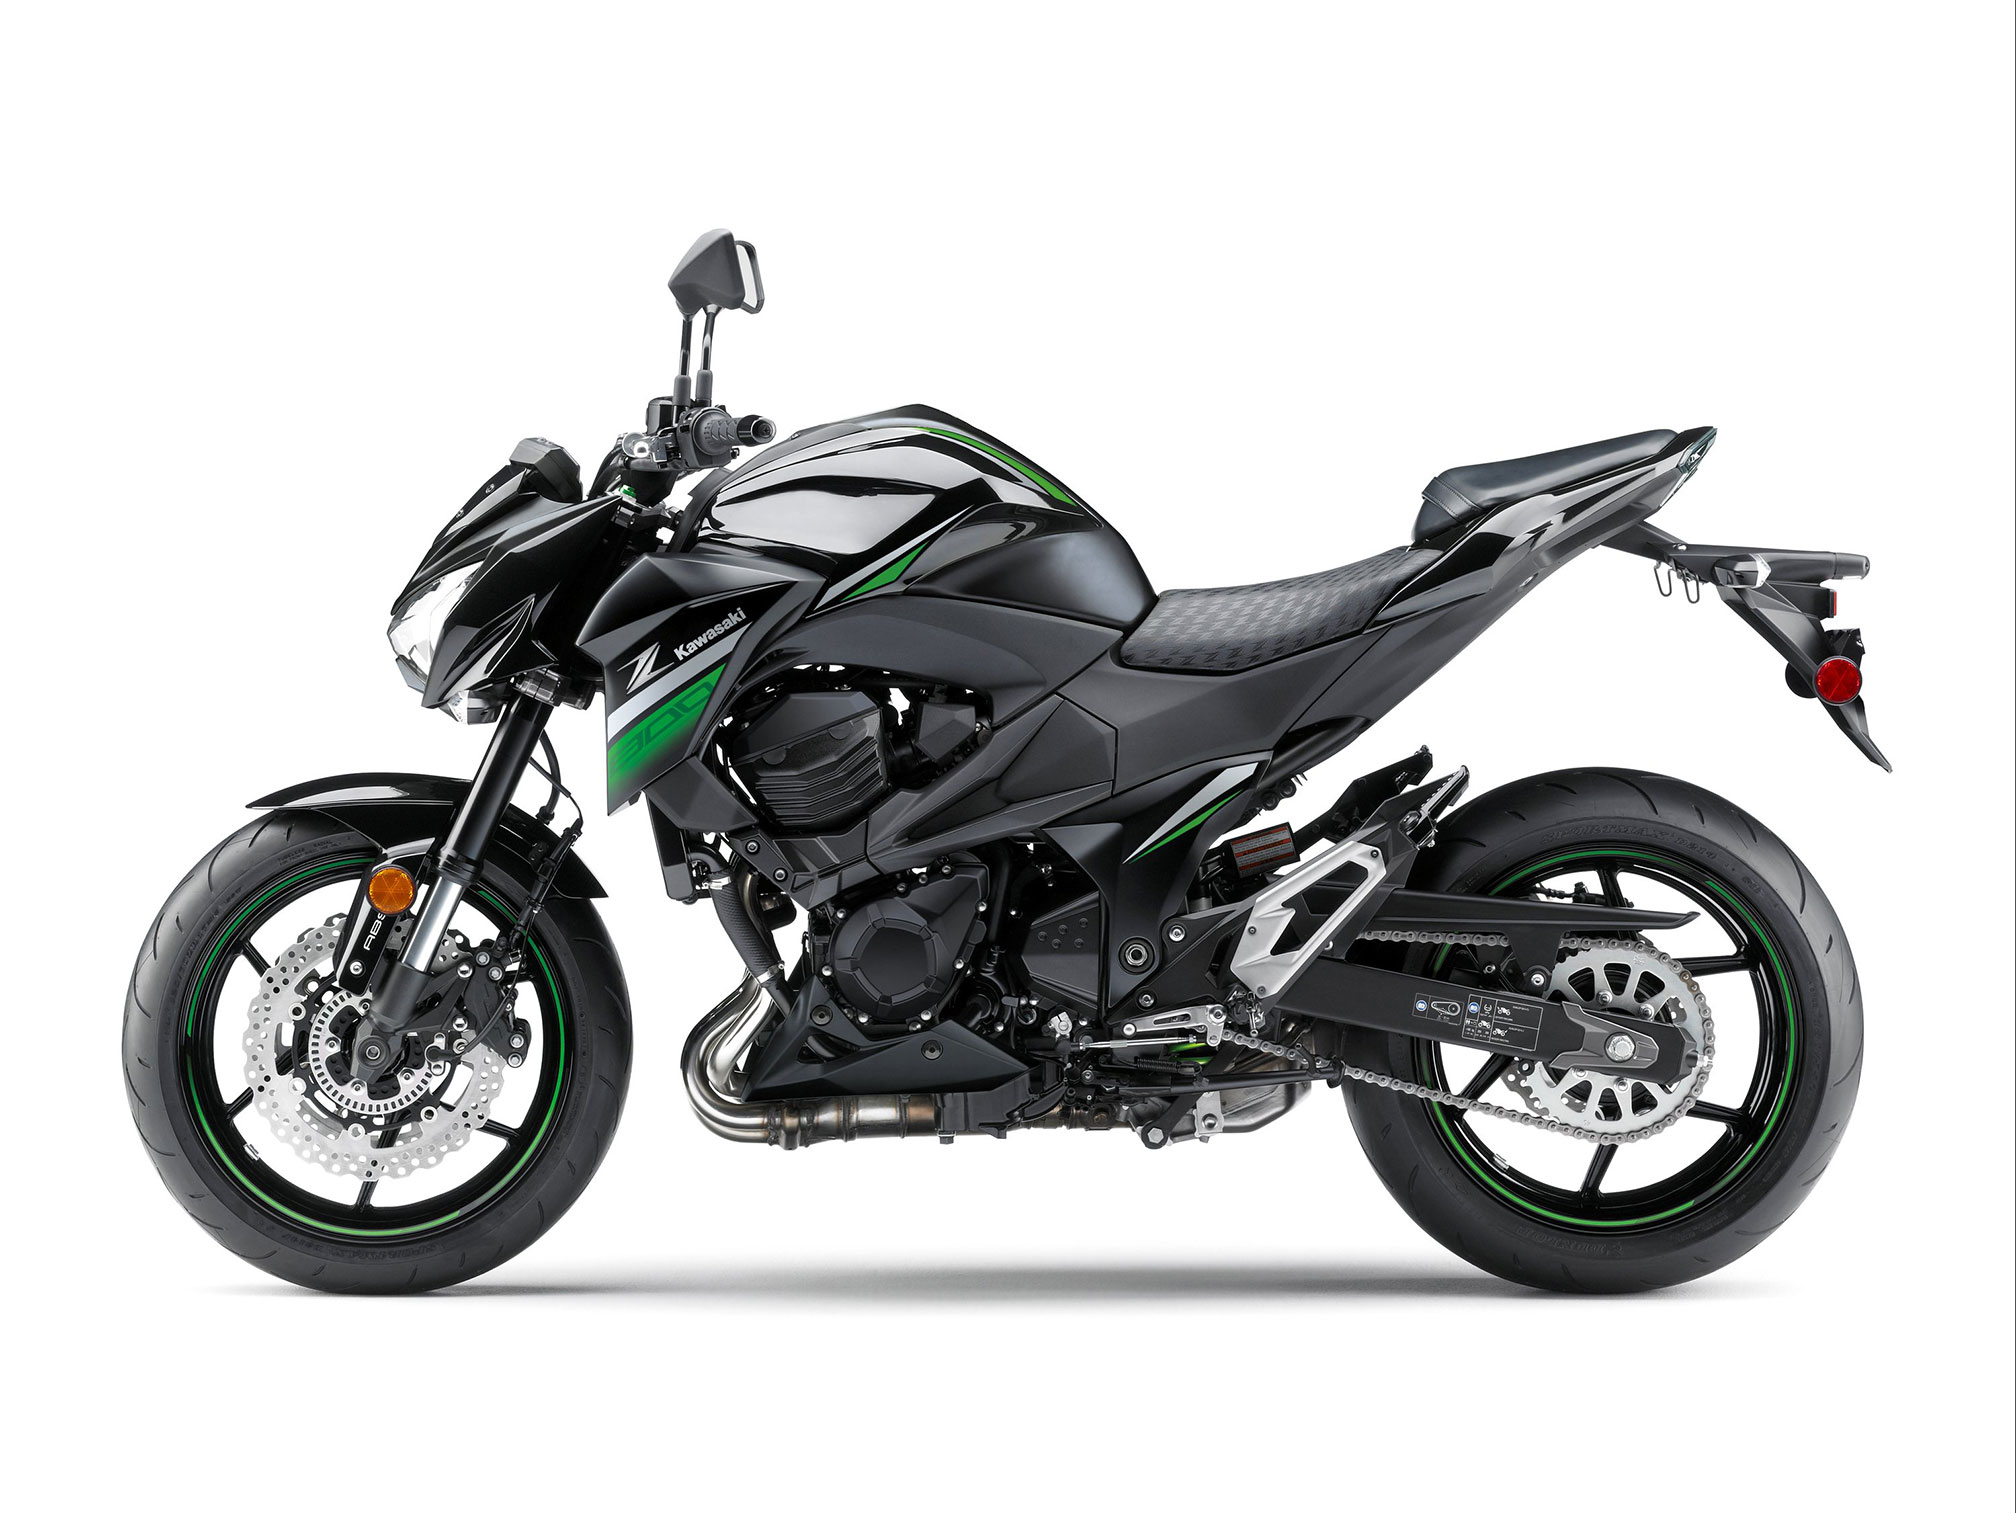 Motorcycle Kawasaki Z800: reviews, technical specifications, manufacturer